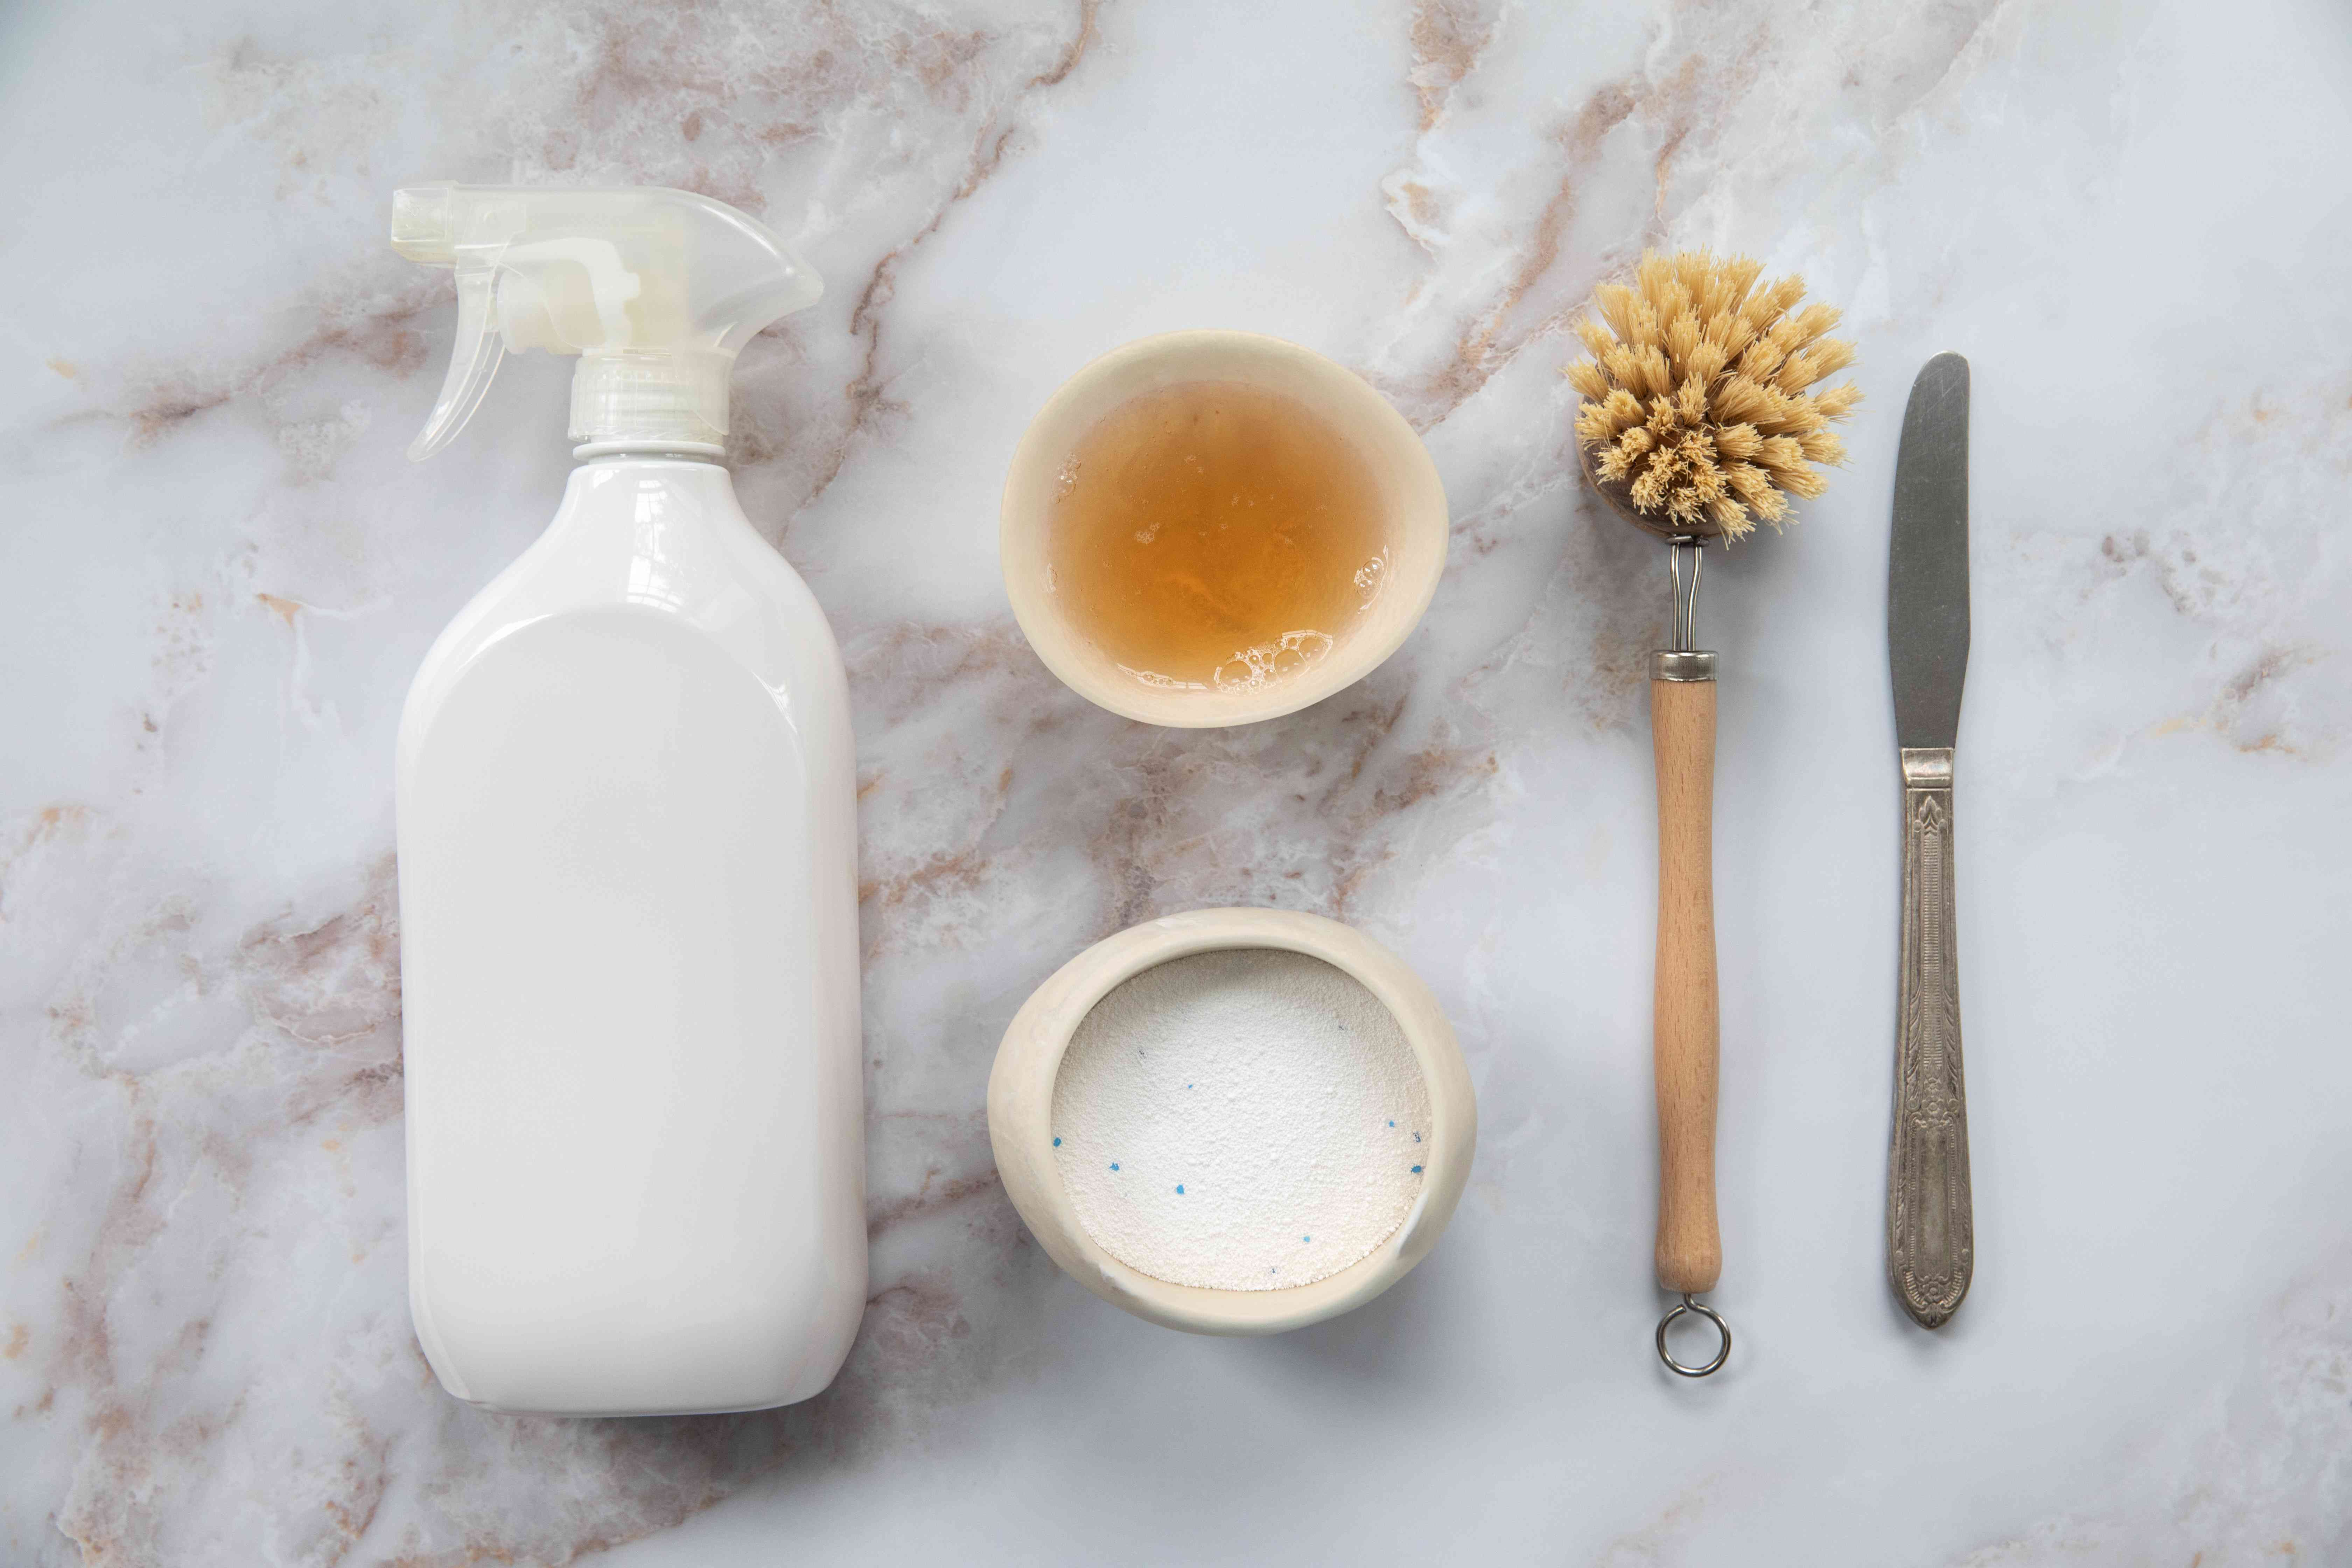 materials for removing lotion stains